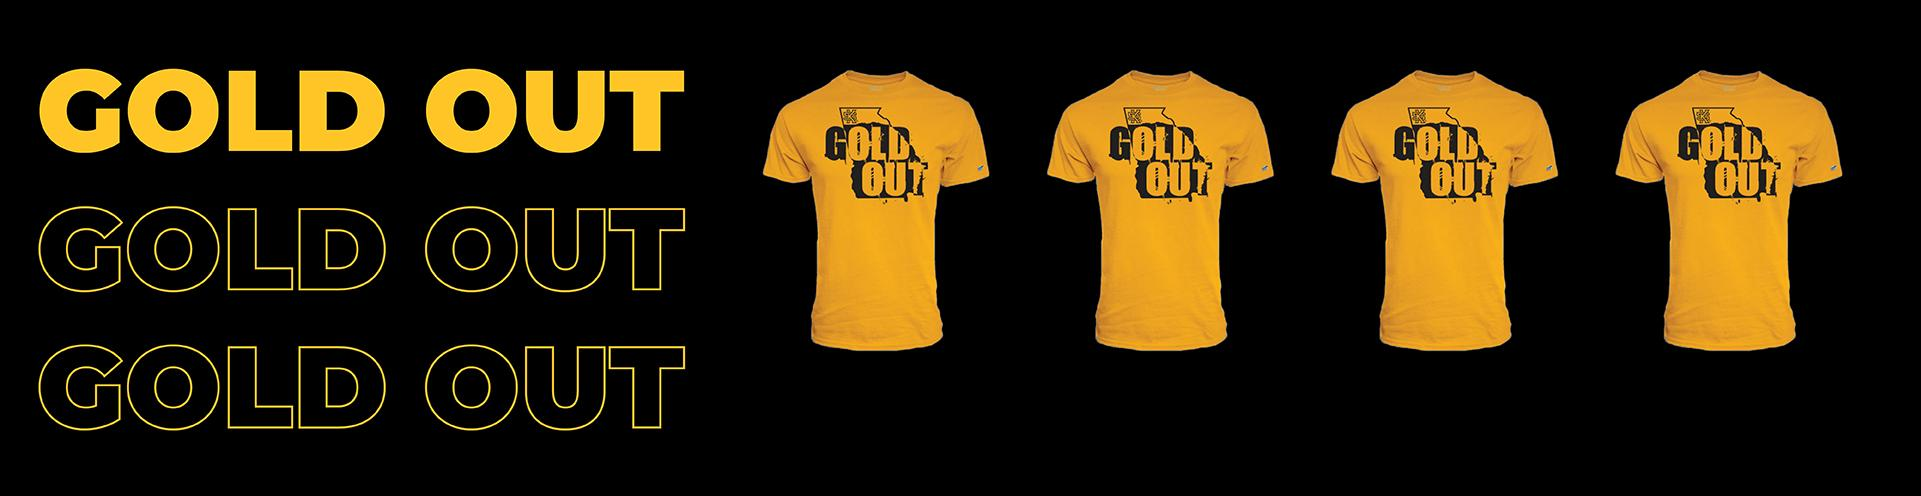 Official Gold Out T-Shirt